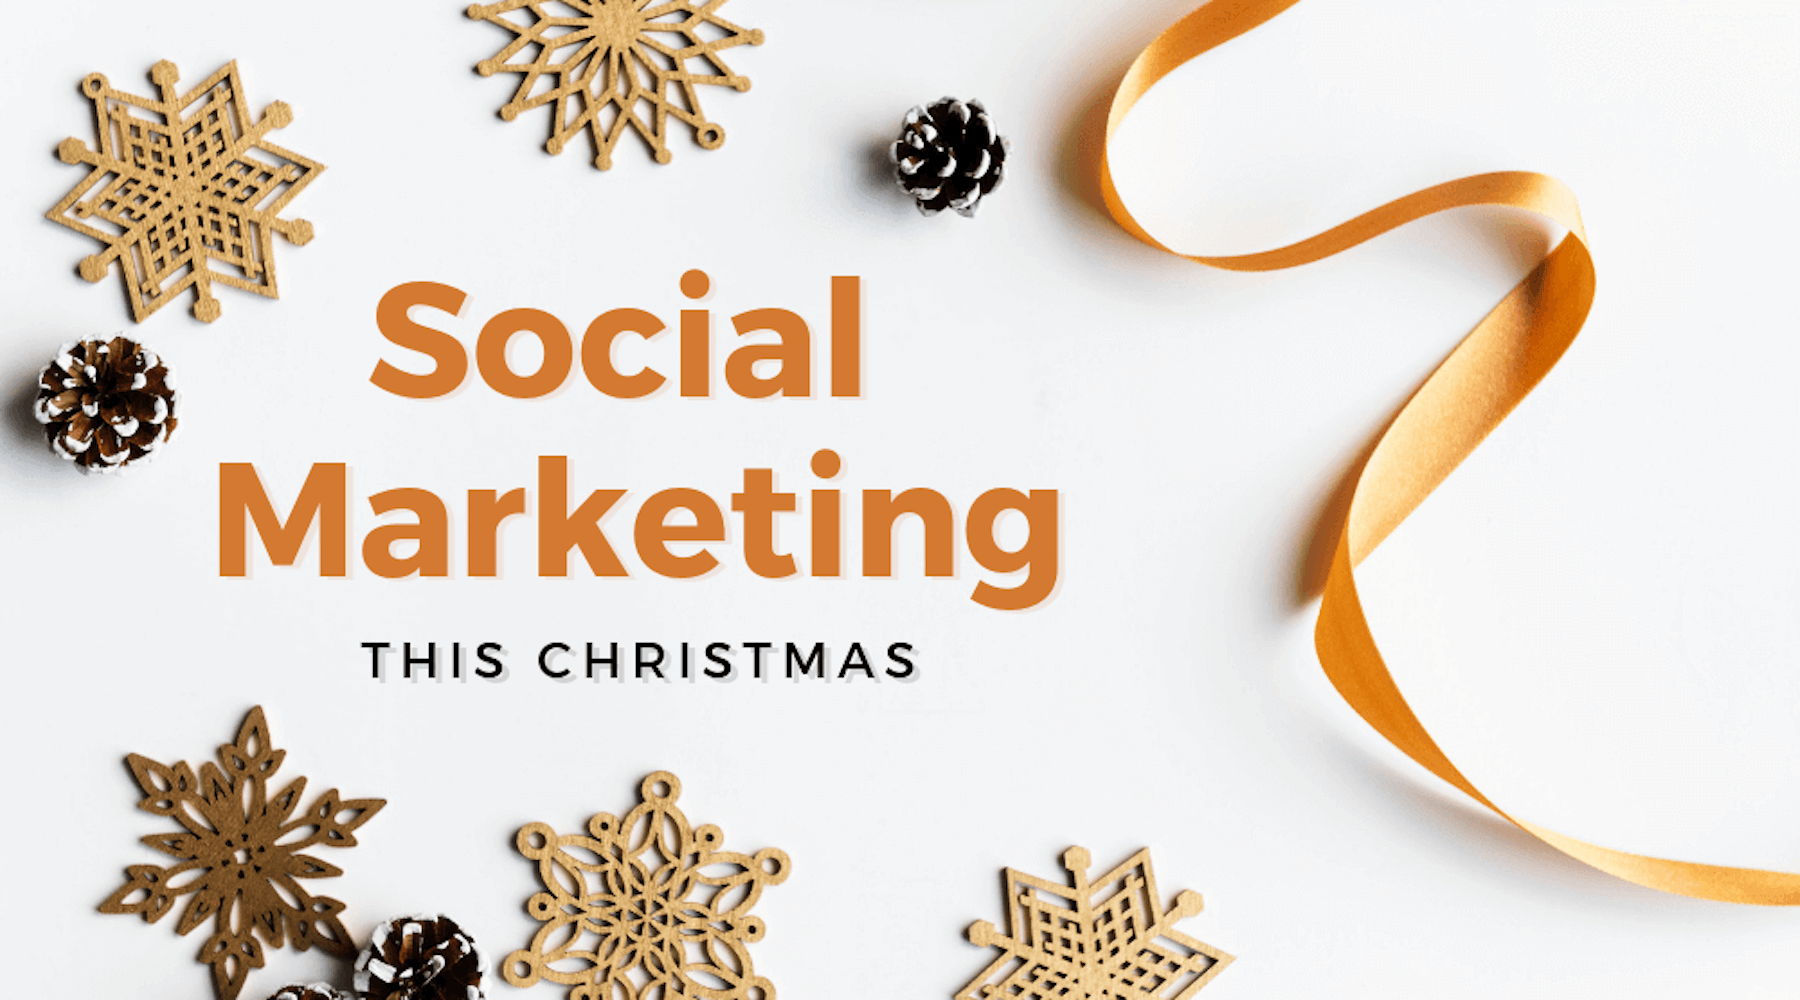 Holiday season is one of the liveliest periods of the year for online sales, meaning massive competition and the perfect opportunity to develop a Social Media Strategy that makes you stand out!